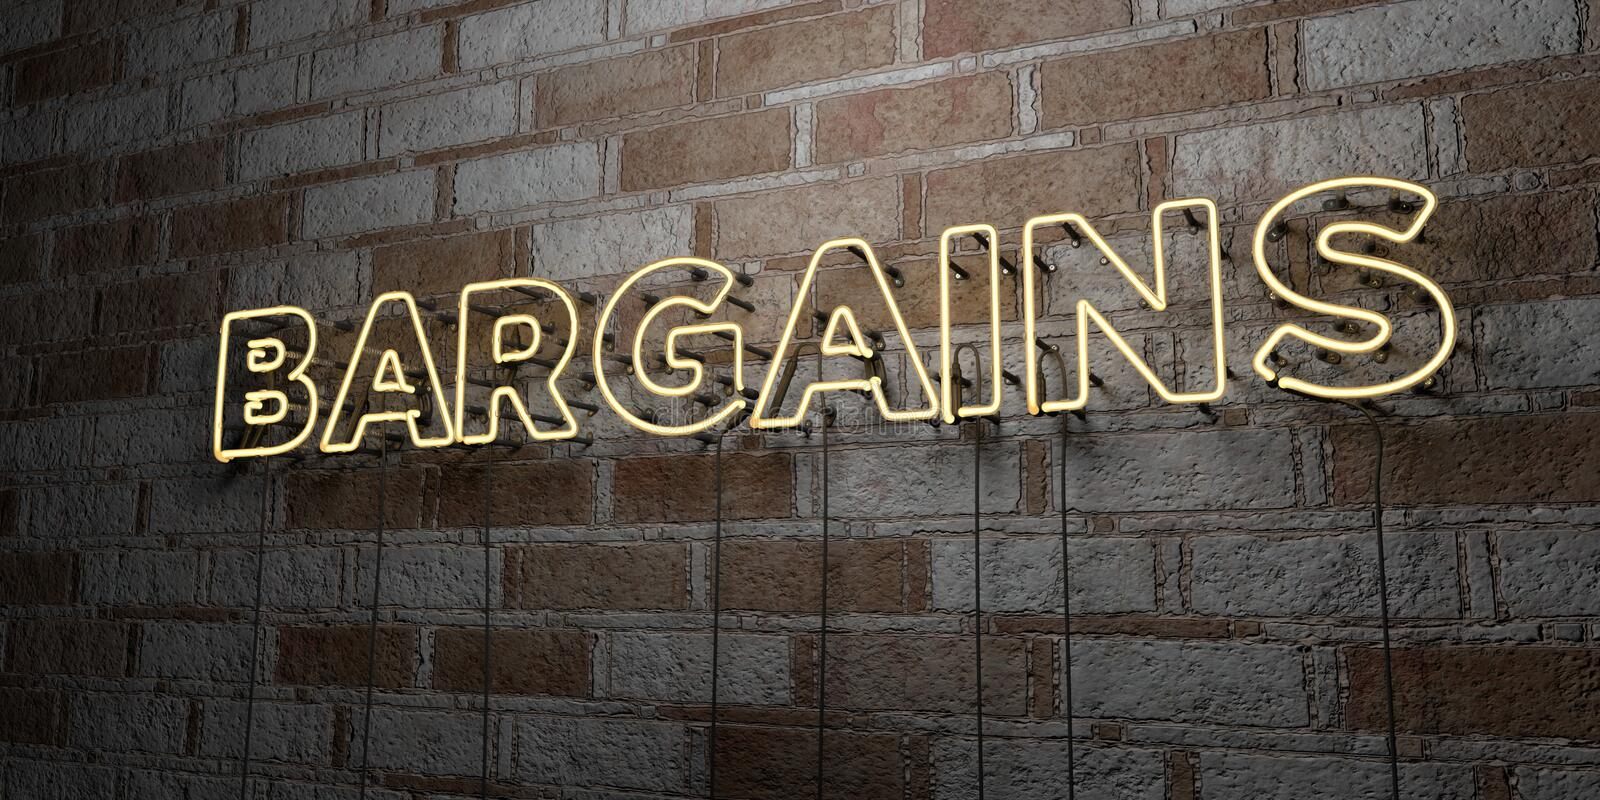 BARGAINS - Glowing Neon Sign on stonework wall - 3D rendered royalty free stock illustration. Can be used for online banner ads and direct mailers vector illustration